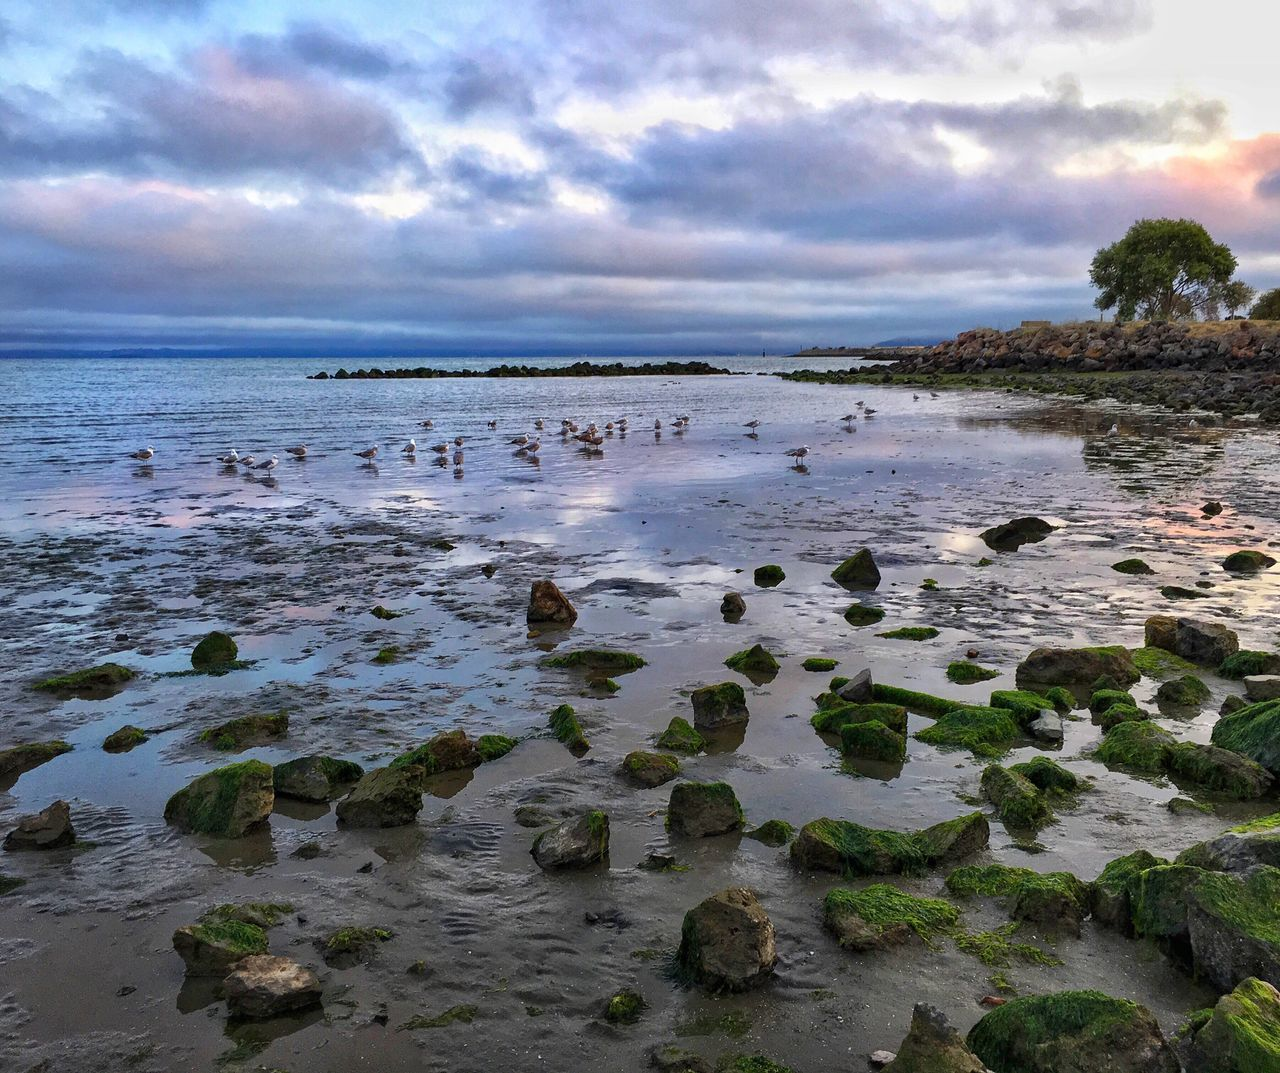 Taken last week when I managed to get out of the house for a few minutes to see the sunset. Sunset Beach Low Tide Alameda Purple Sky Rocks Rocky Deserted